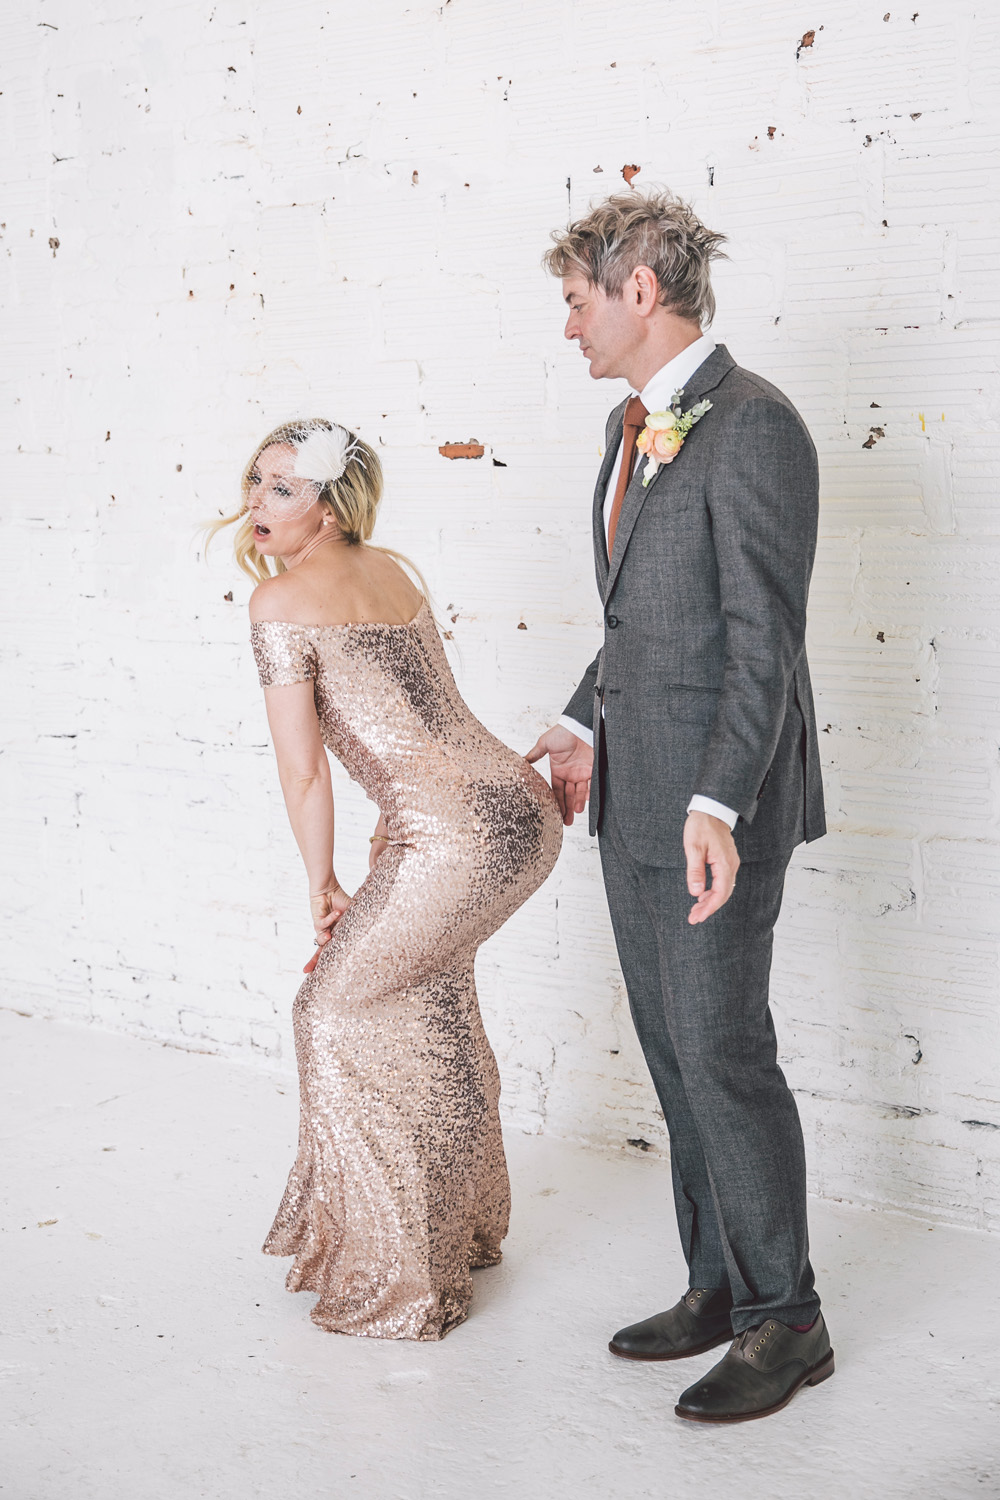 Editorial Alternative Wedding Photography in Atlanta, GA